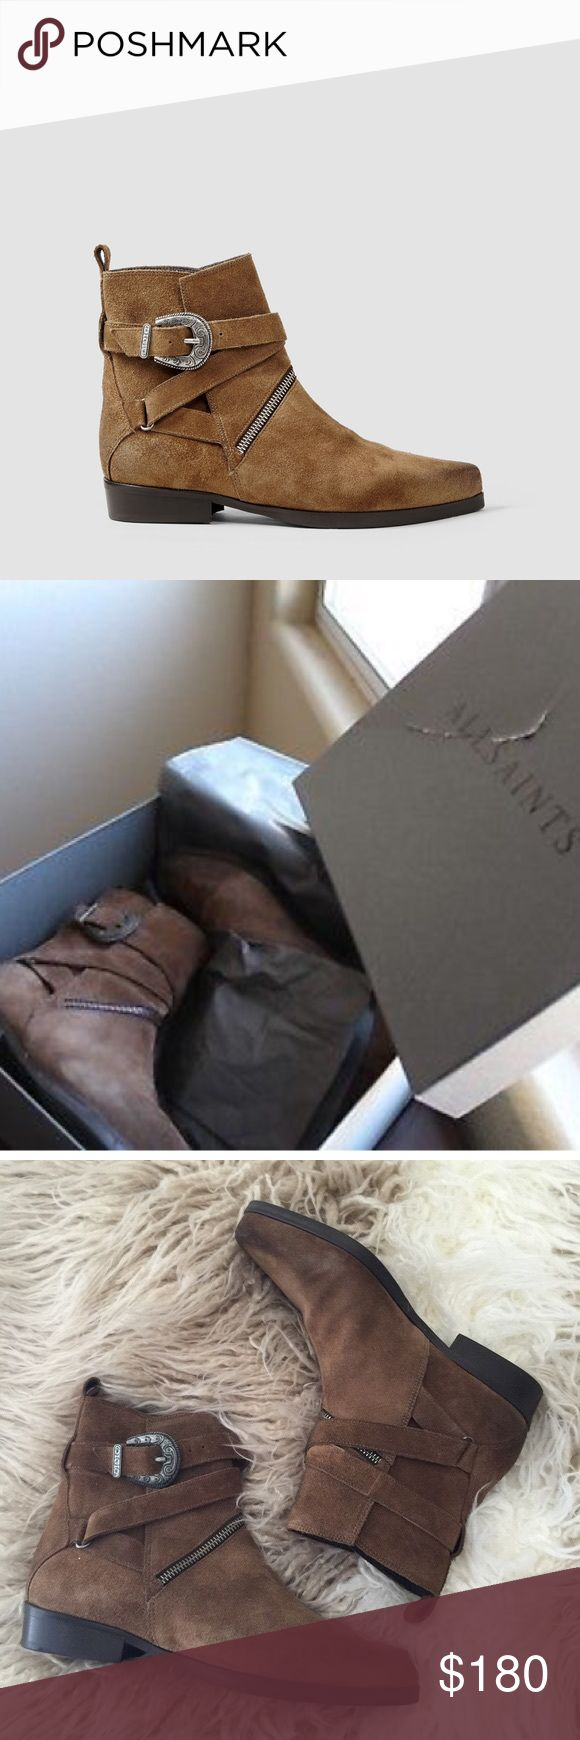 ALLSAINTS 'Tejus' Buckle Ankle Boot Gently worn, great condition. Allsaints genuine suede leather buckle ankle boot. Pointed toe, low chunk heel. Retail: $425 All Saints Shoes Ankle Boots & Booties